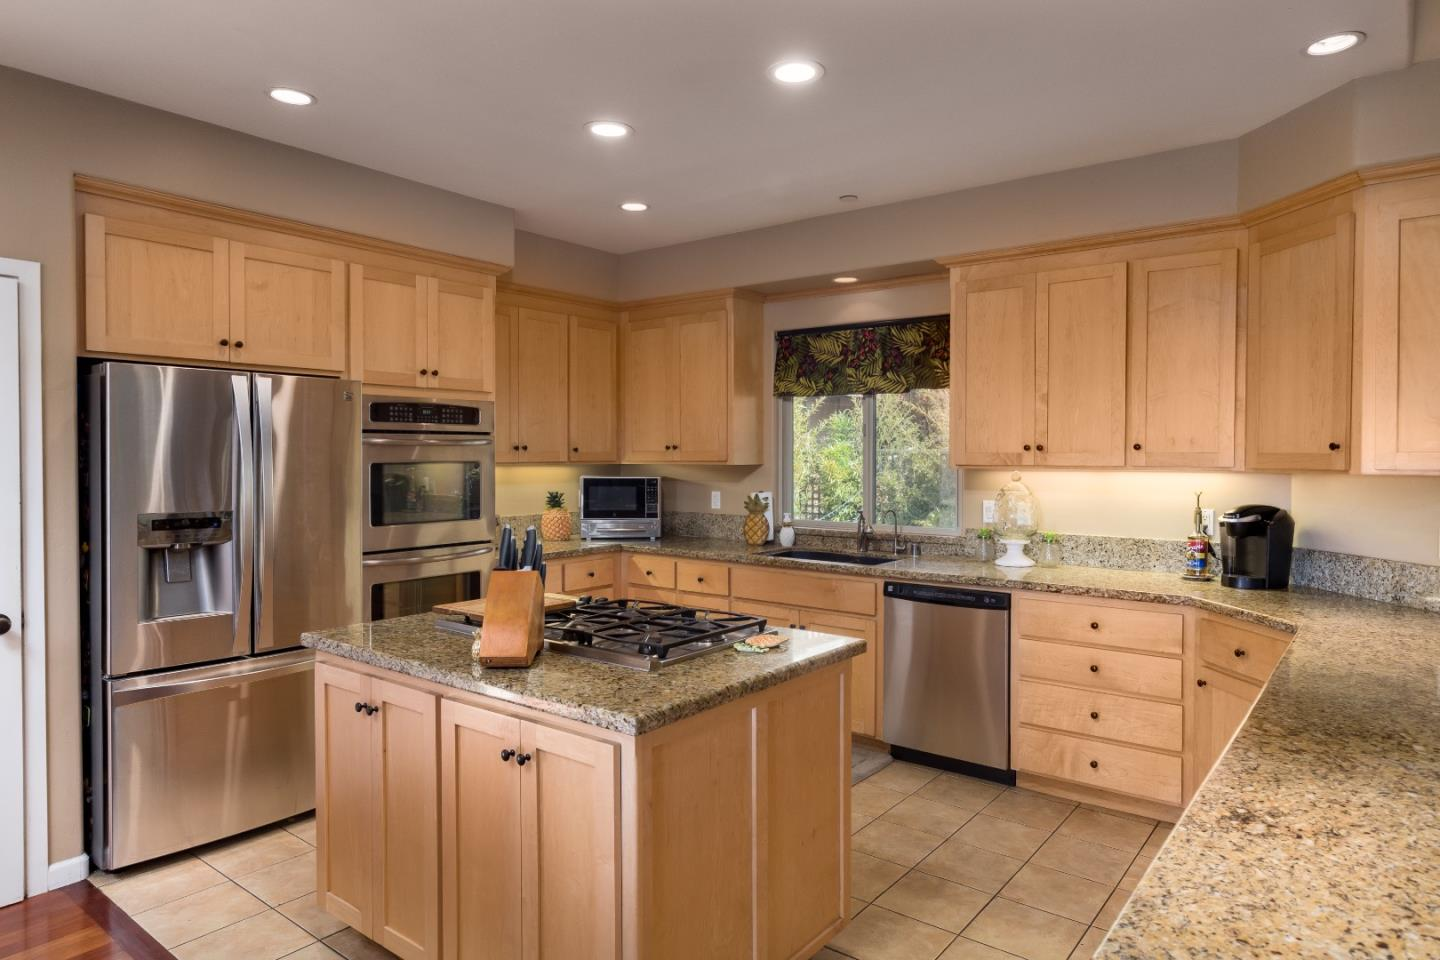 Additional photo for property listing at 3370 Houts Drive  Santa Cruz, カリフォルニア 95065 アメリカ合衆国